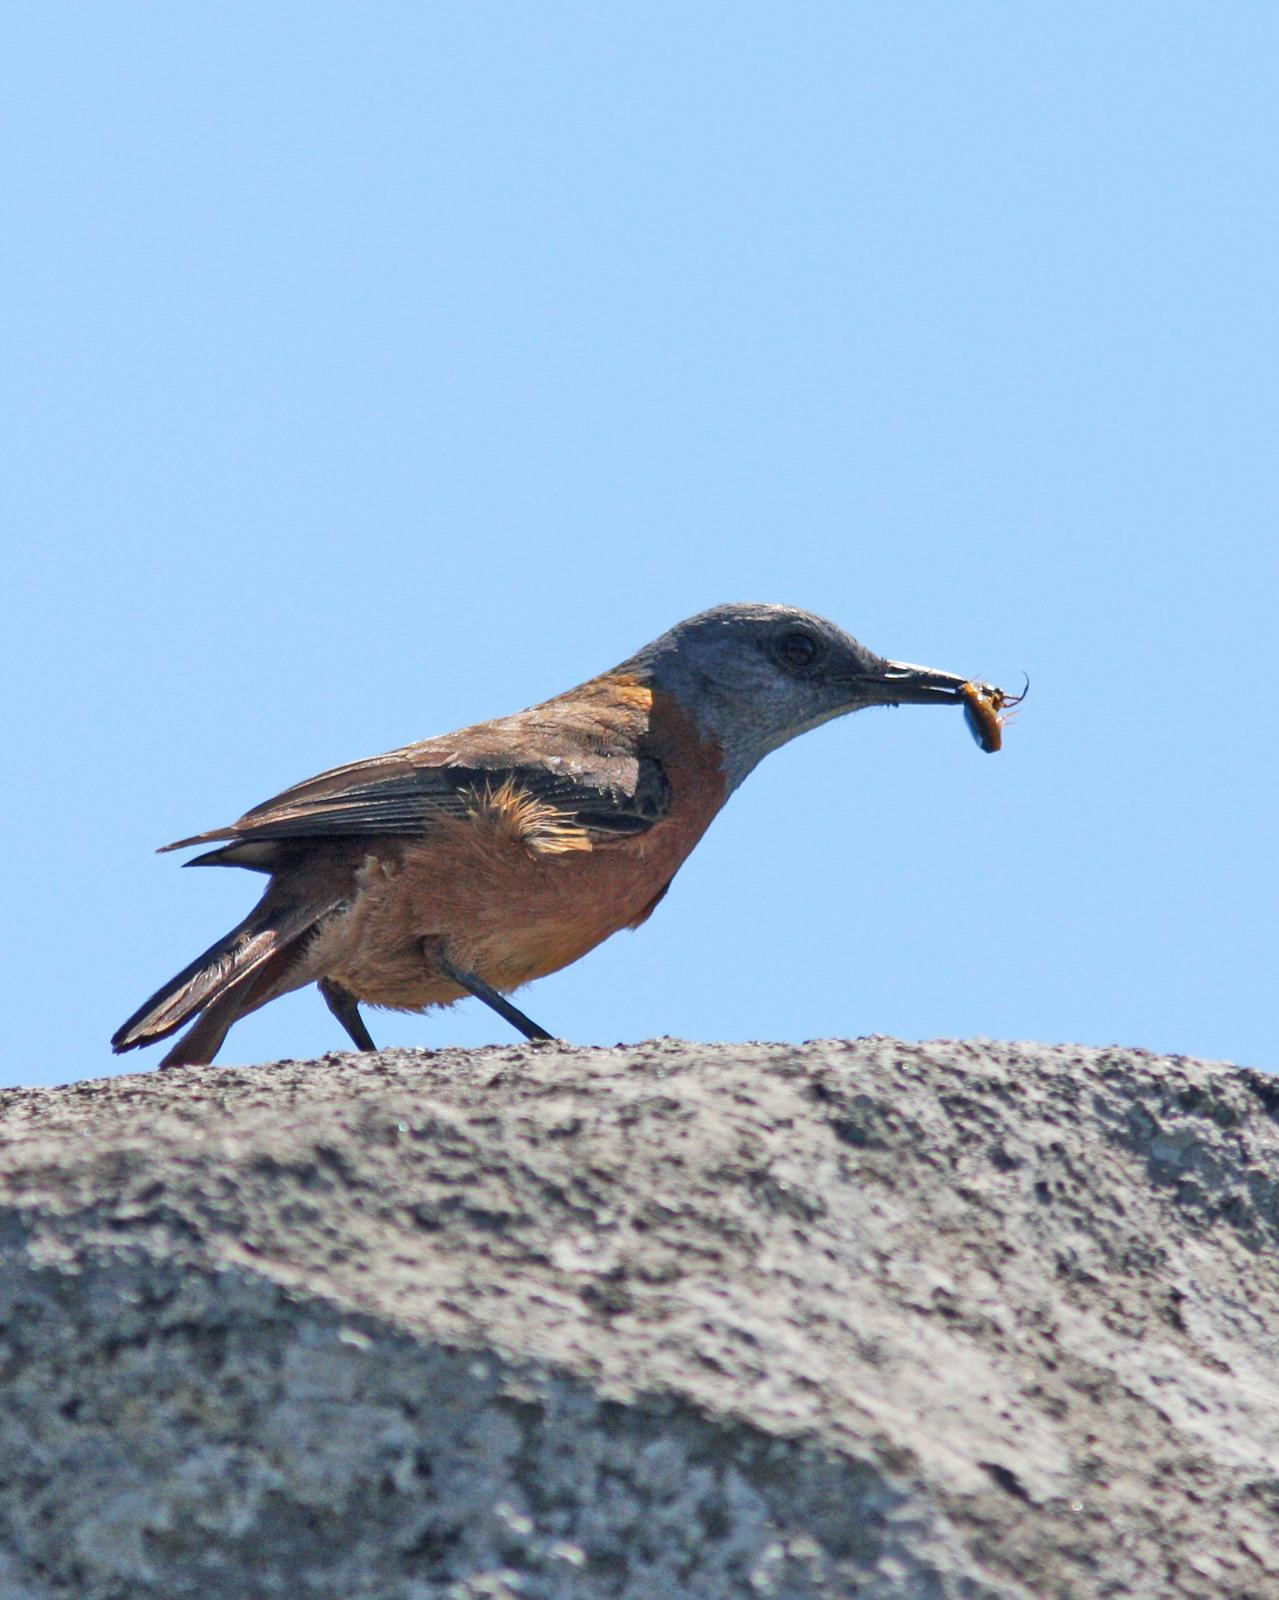 Cape Rock-Thrush Photo by Henk Baptist